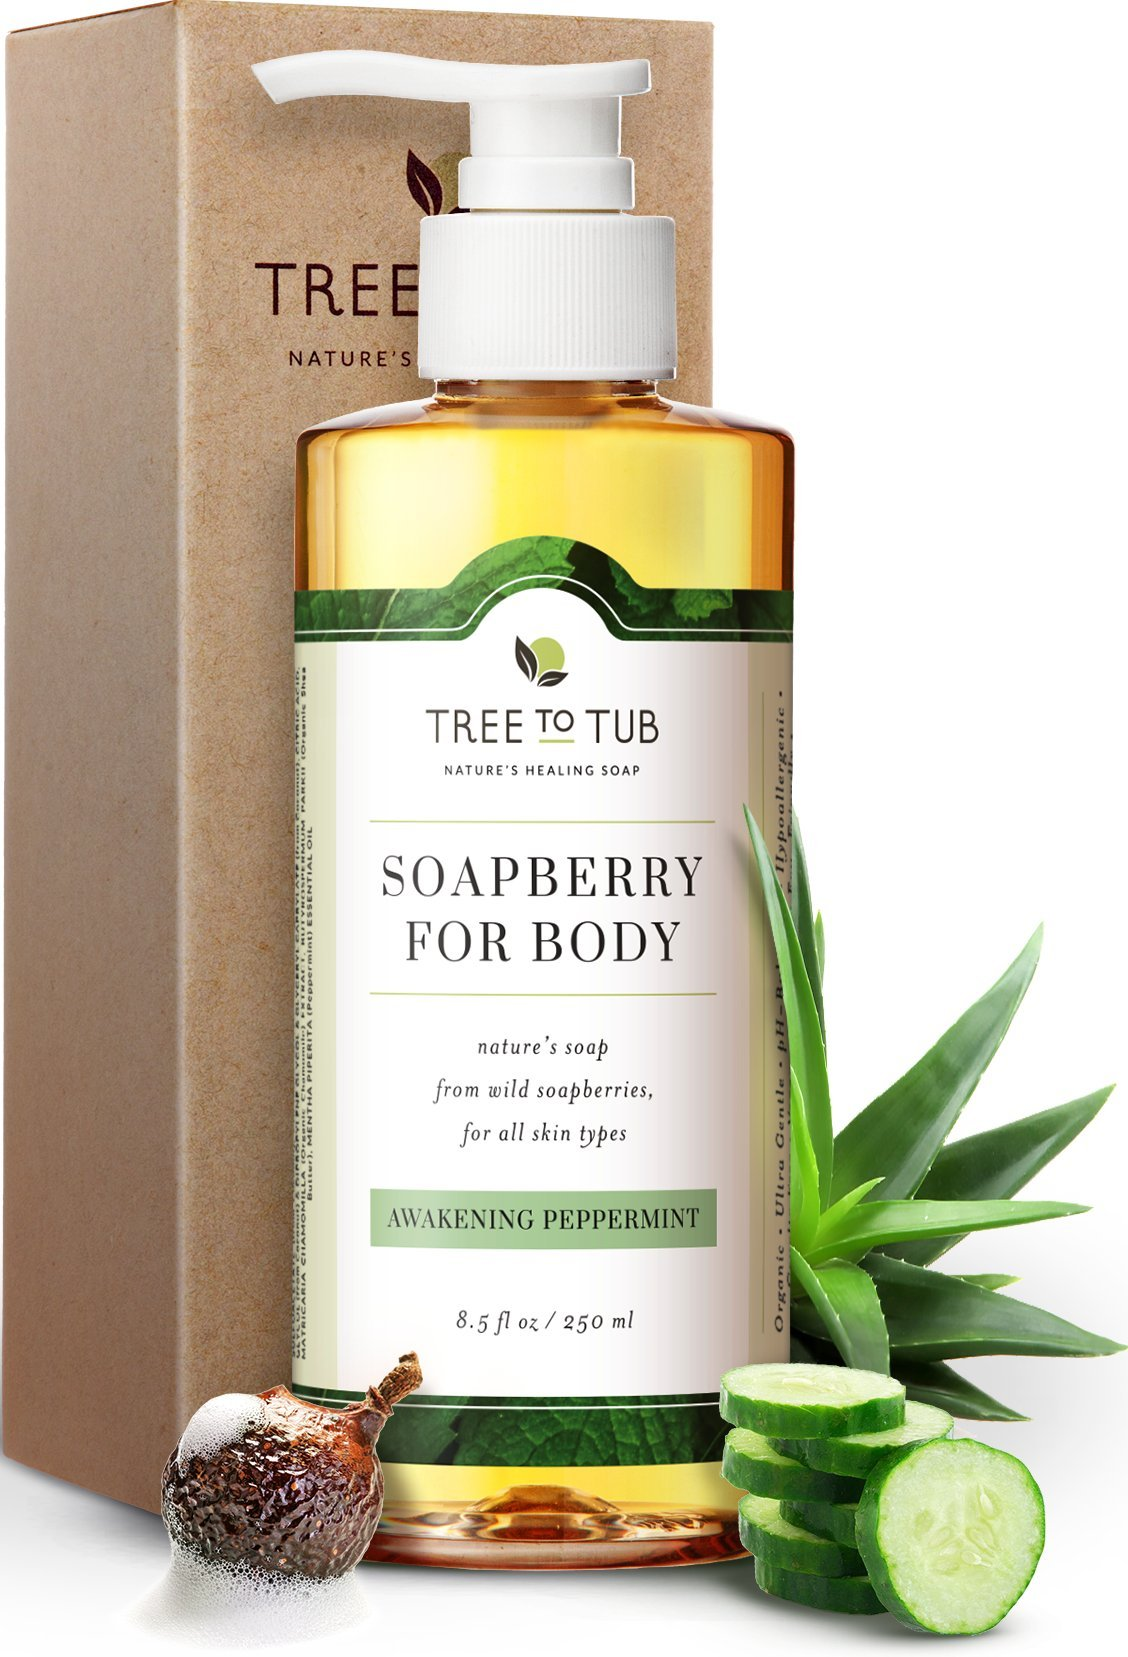 Clarifying Peppermint Body Wash By Tree to Tub | The Only pH 5.5 Balanced Antibacterial Body Wash Using Wild Soapberries | Perfect for Hyper Sensitive, Oily, or Acne Prone Skin | Vegan & Cruelty Free